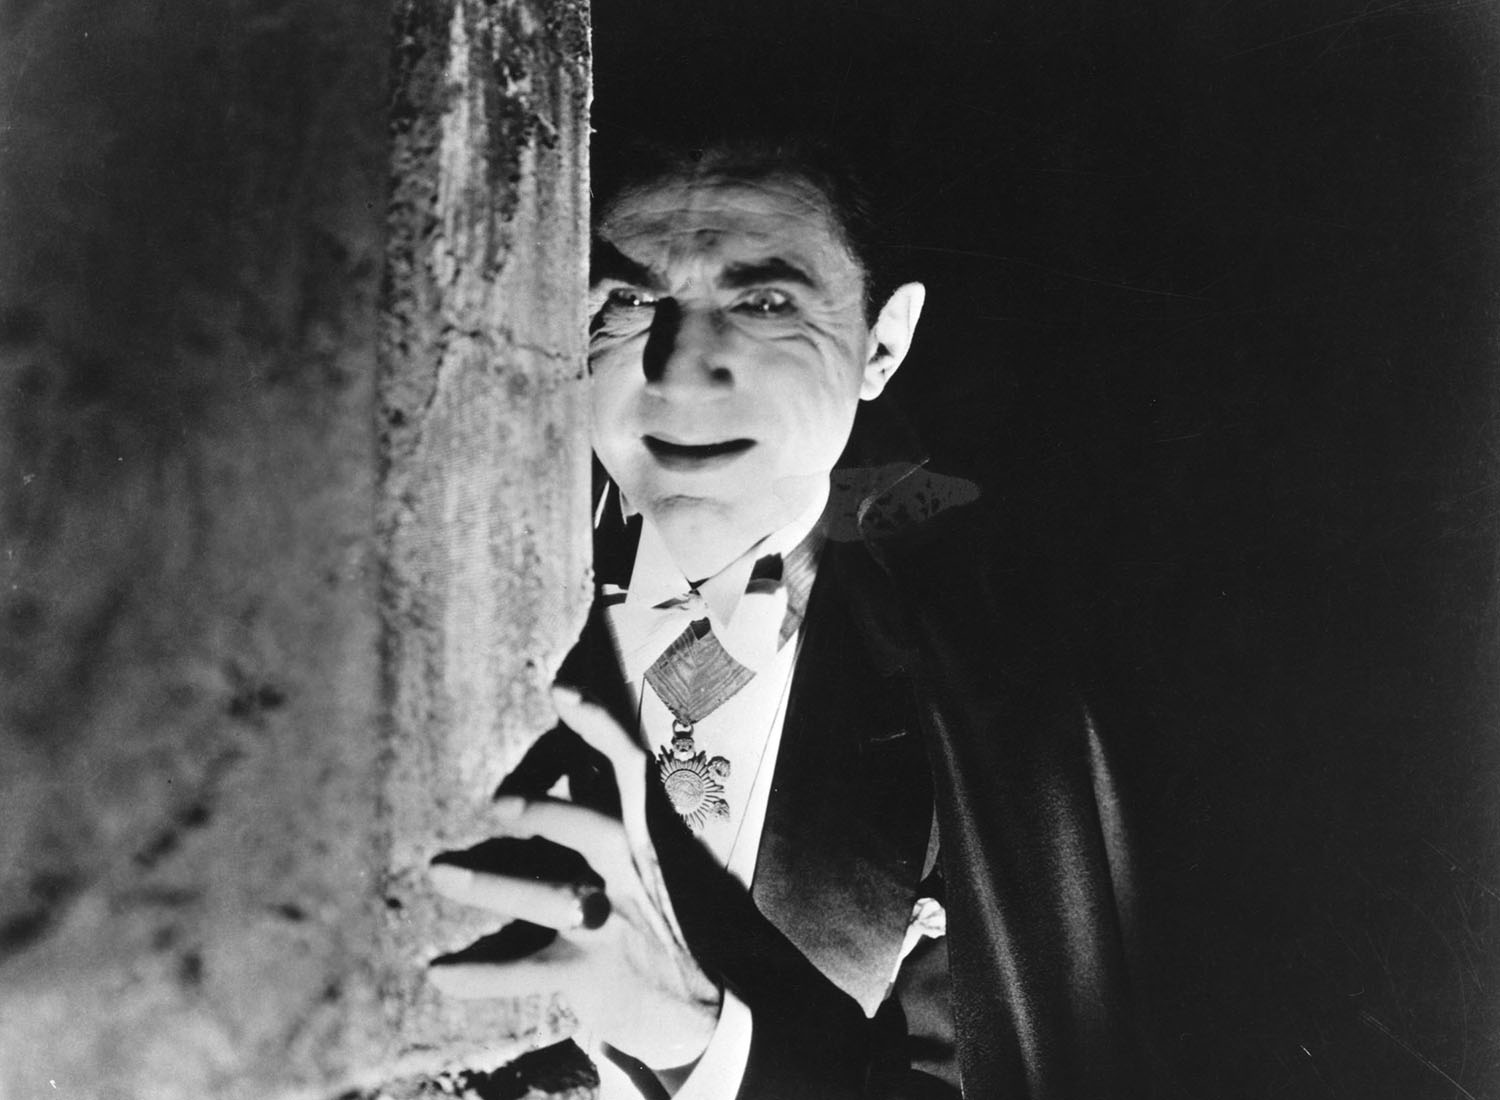 Bela Lugosi as the eponymous Count in Tod Browning's Dracula, 1931. Dracula, 1931. Directed and produced by Tod Browning. Cinematography: Karl Freund. Photo: Alamy